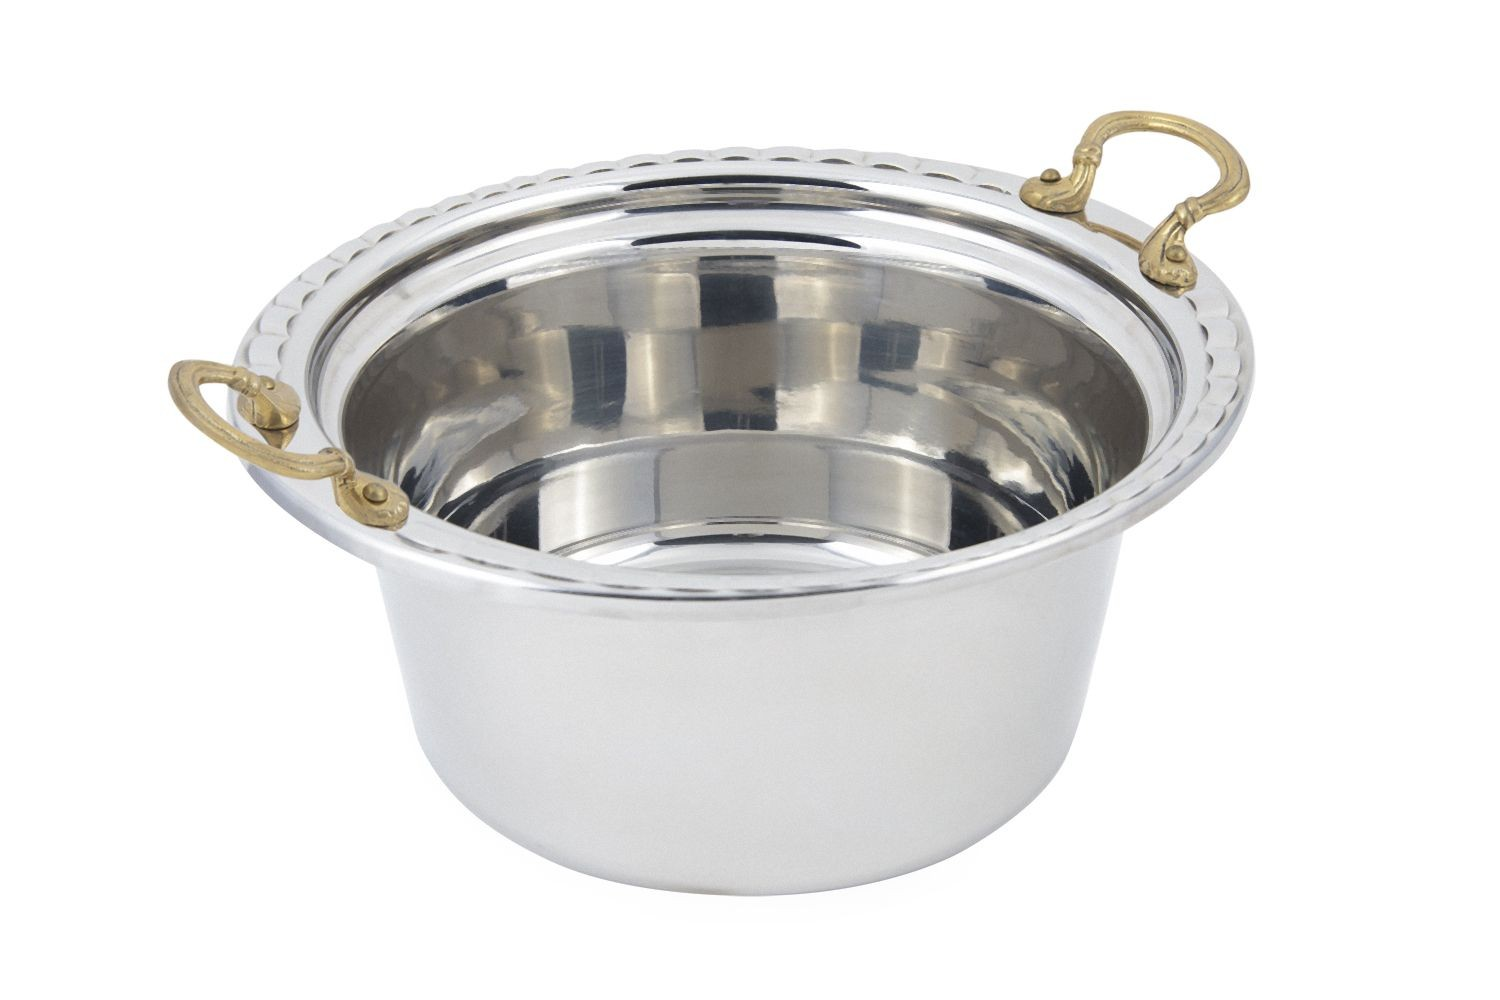 Bon Chef 5660HR Arches Design Casserole Dish with Round Brass Handles, 5 Qt.